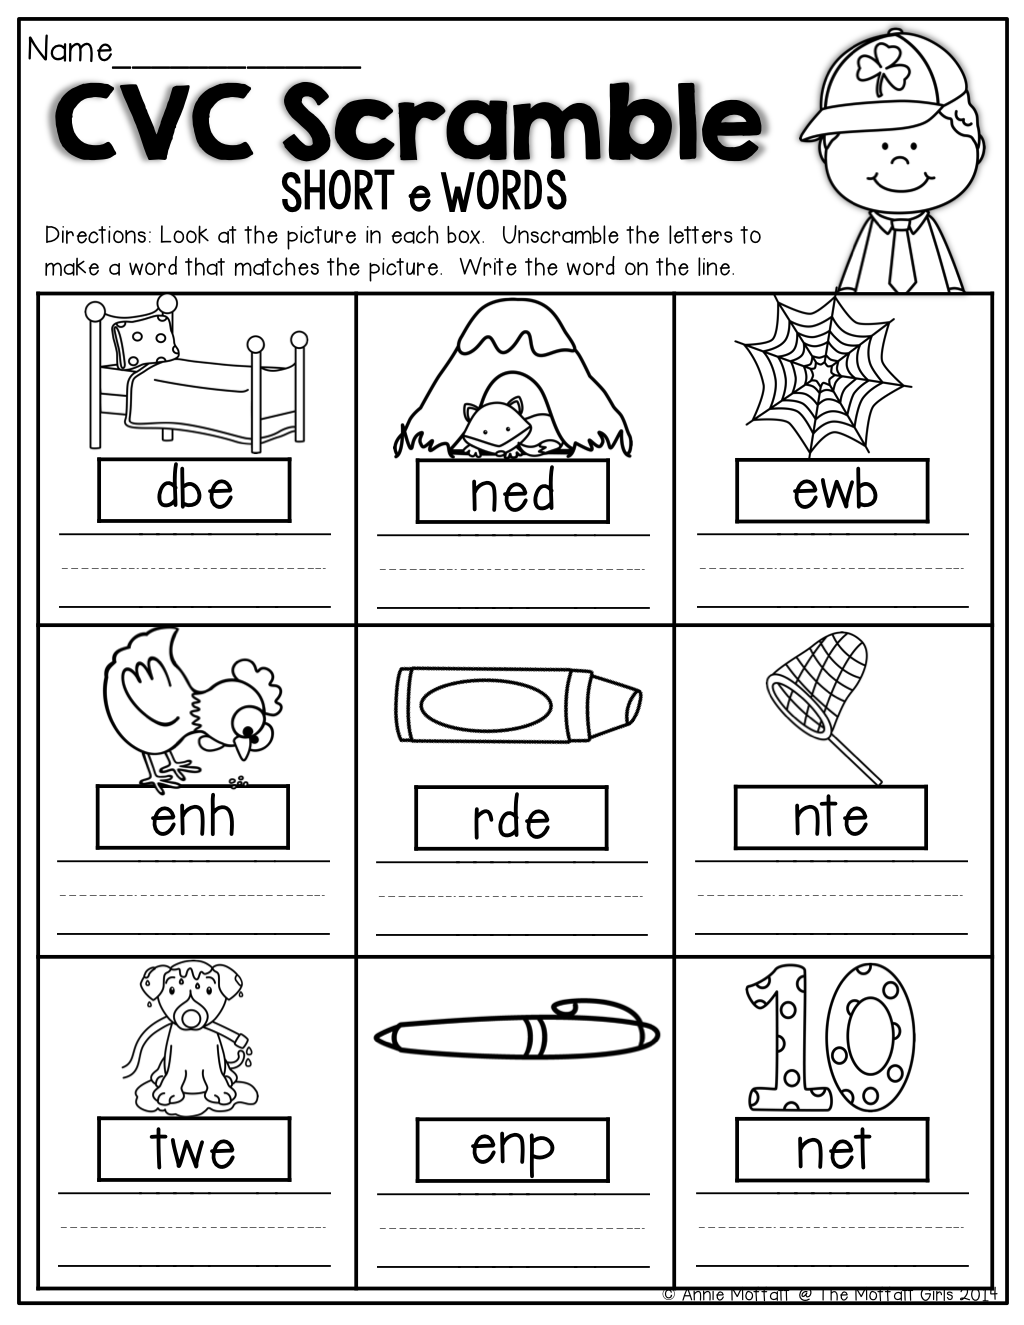 Printables Kindergarten Cvc Worksheets pictures look at and st patrick on pinterest cvc scramble unscramble the words to make a word that matches picture